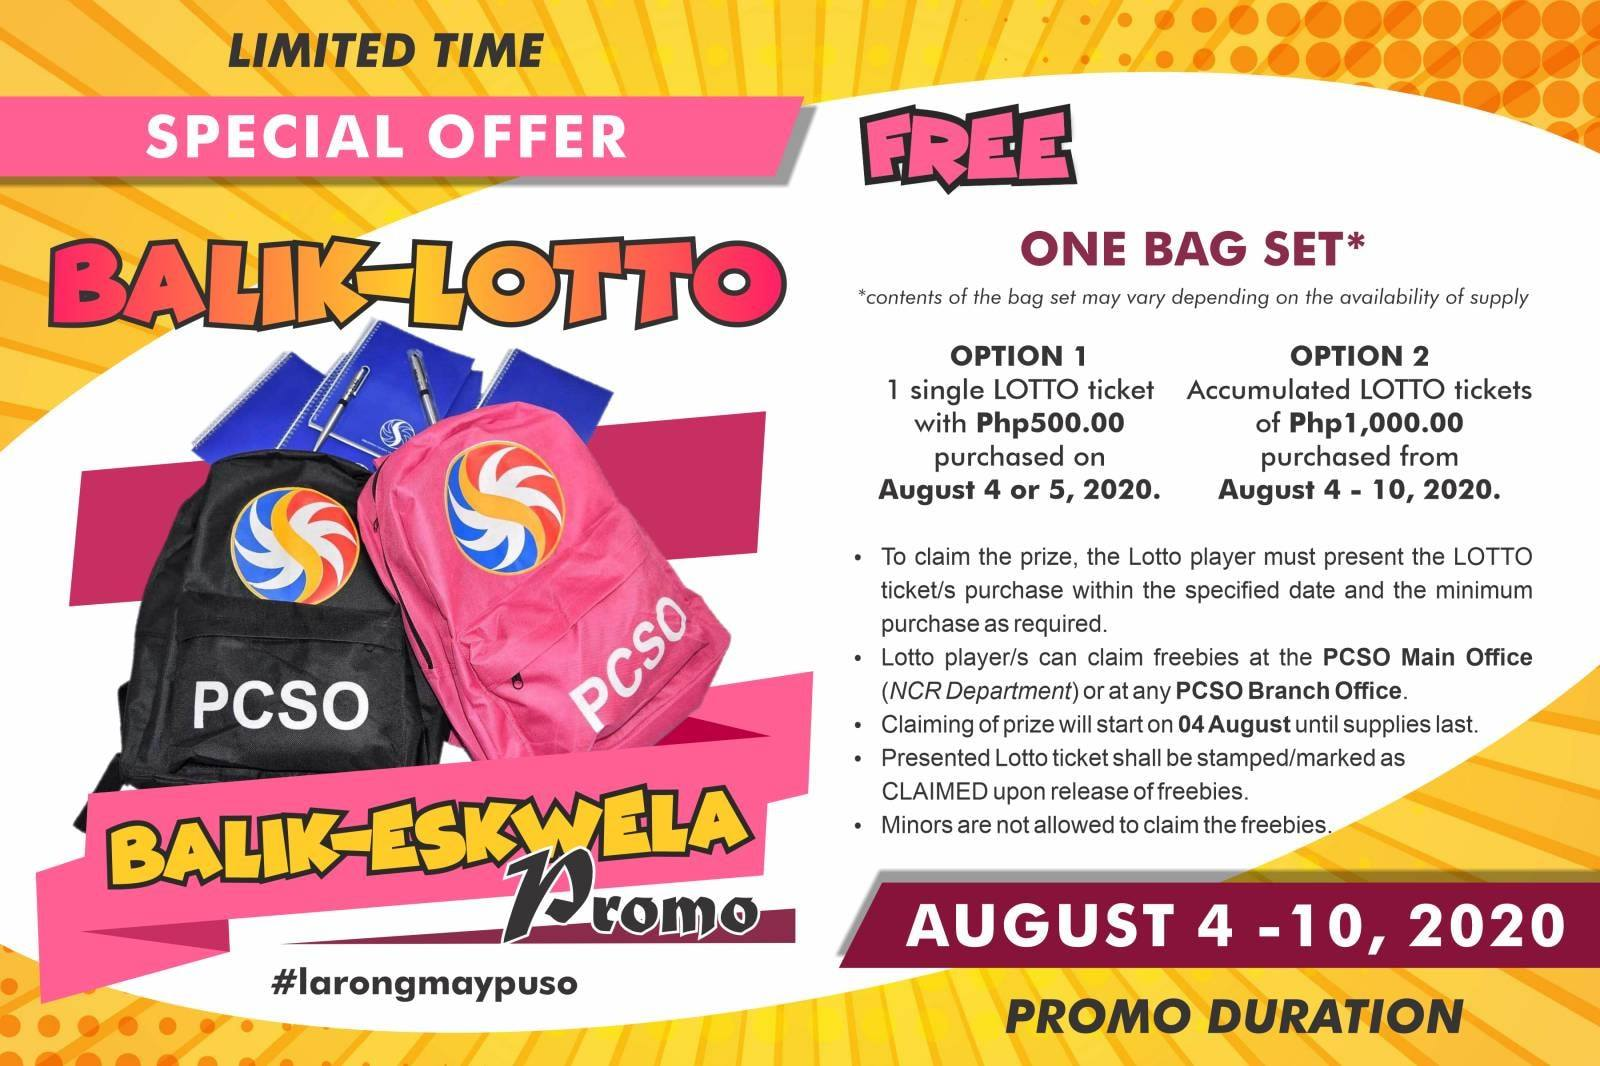 PCSO announce Special Offer Balik-Lotto